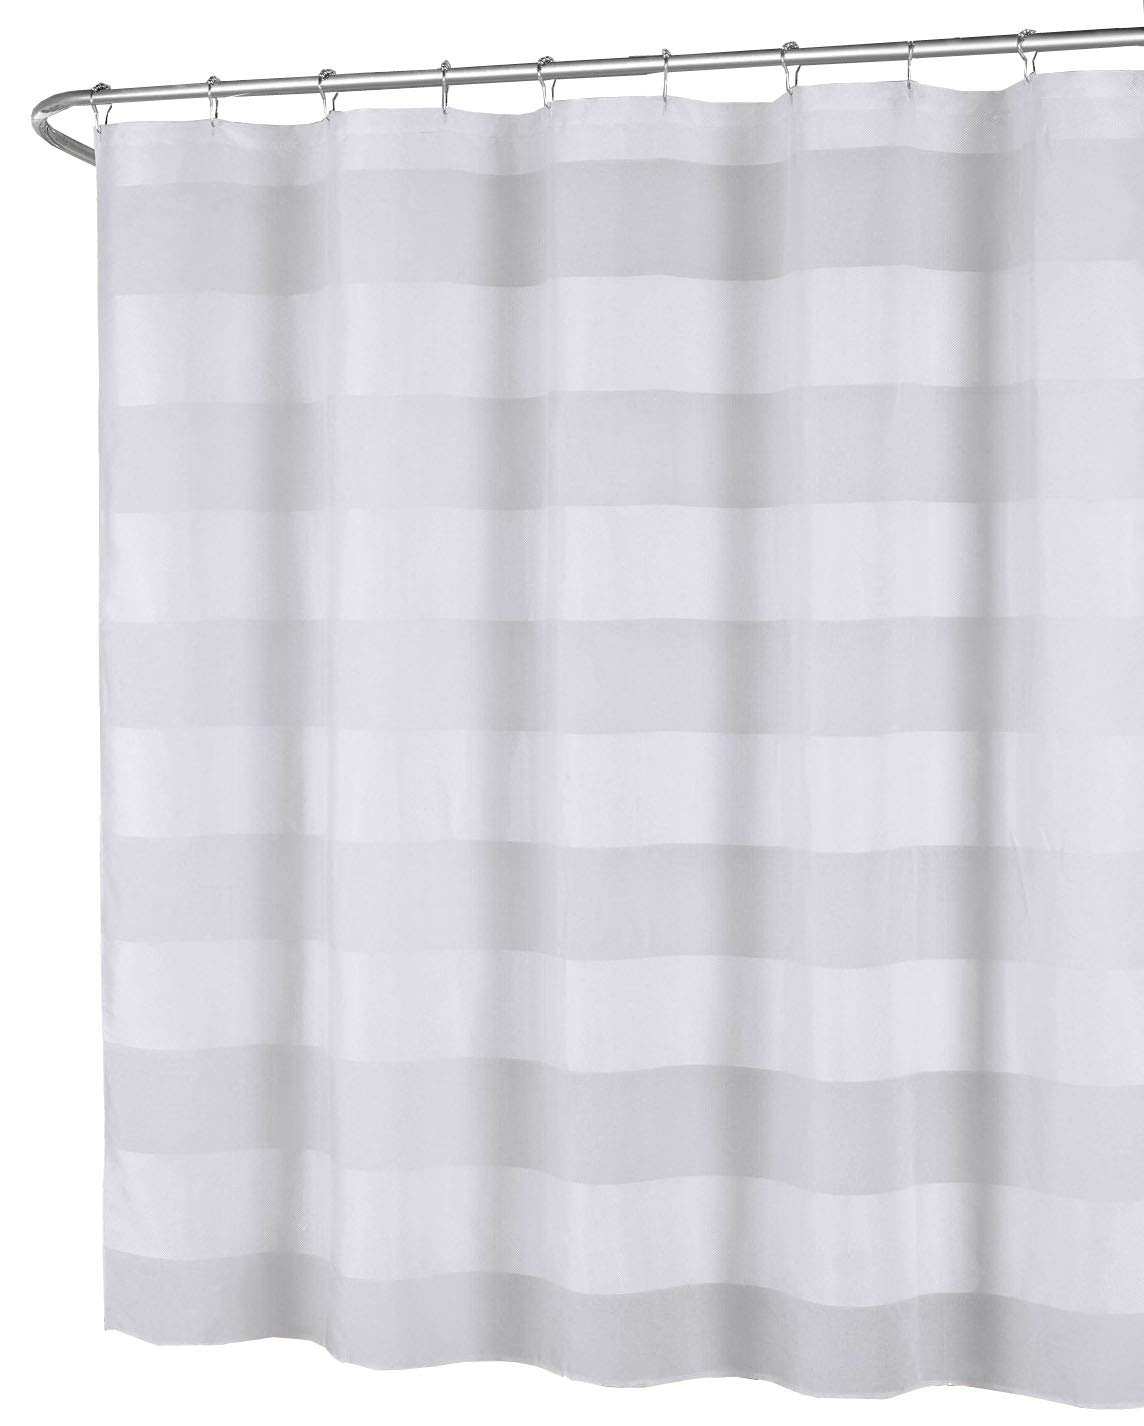 Amazon.com: White Fabric Shower Curtain: Wide Stripe Design, 70\